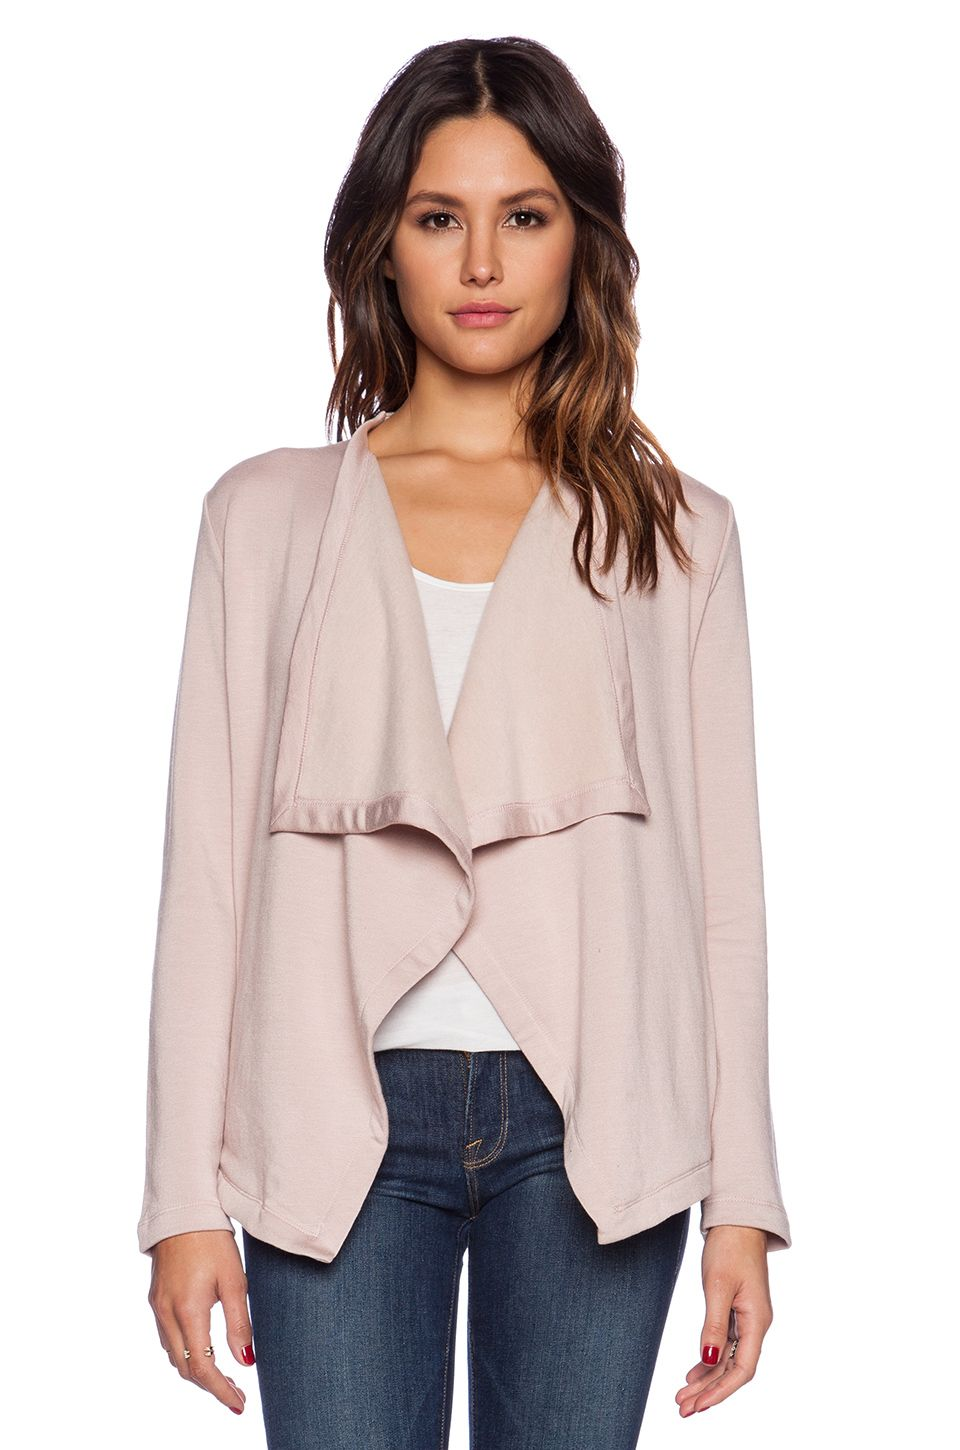 blush neutral pink colored cardigan